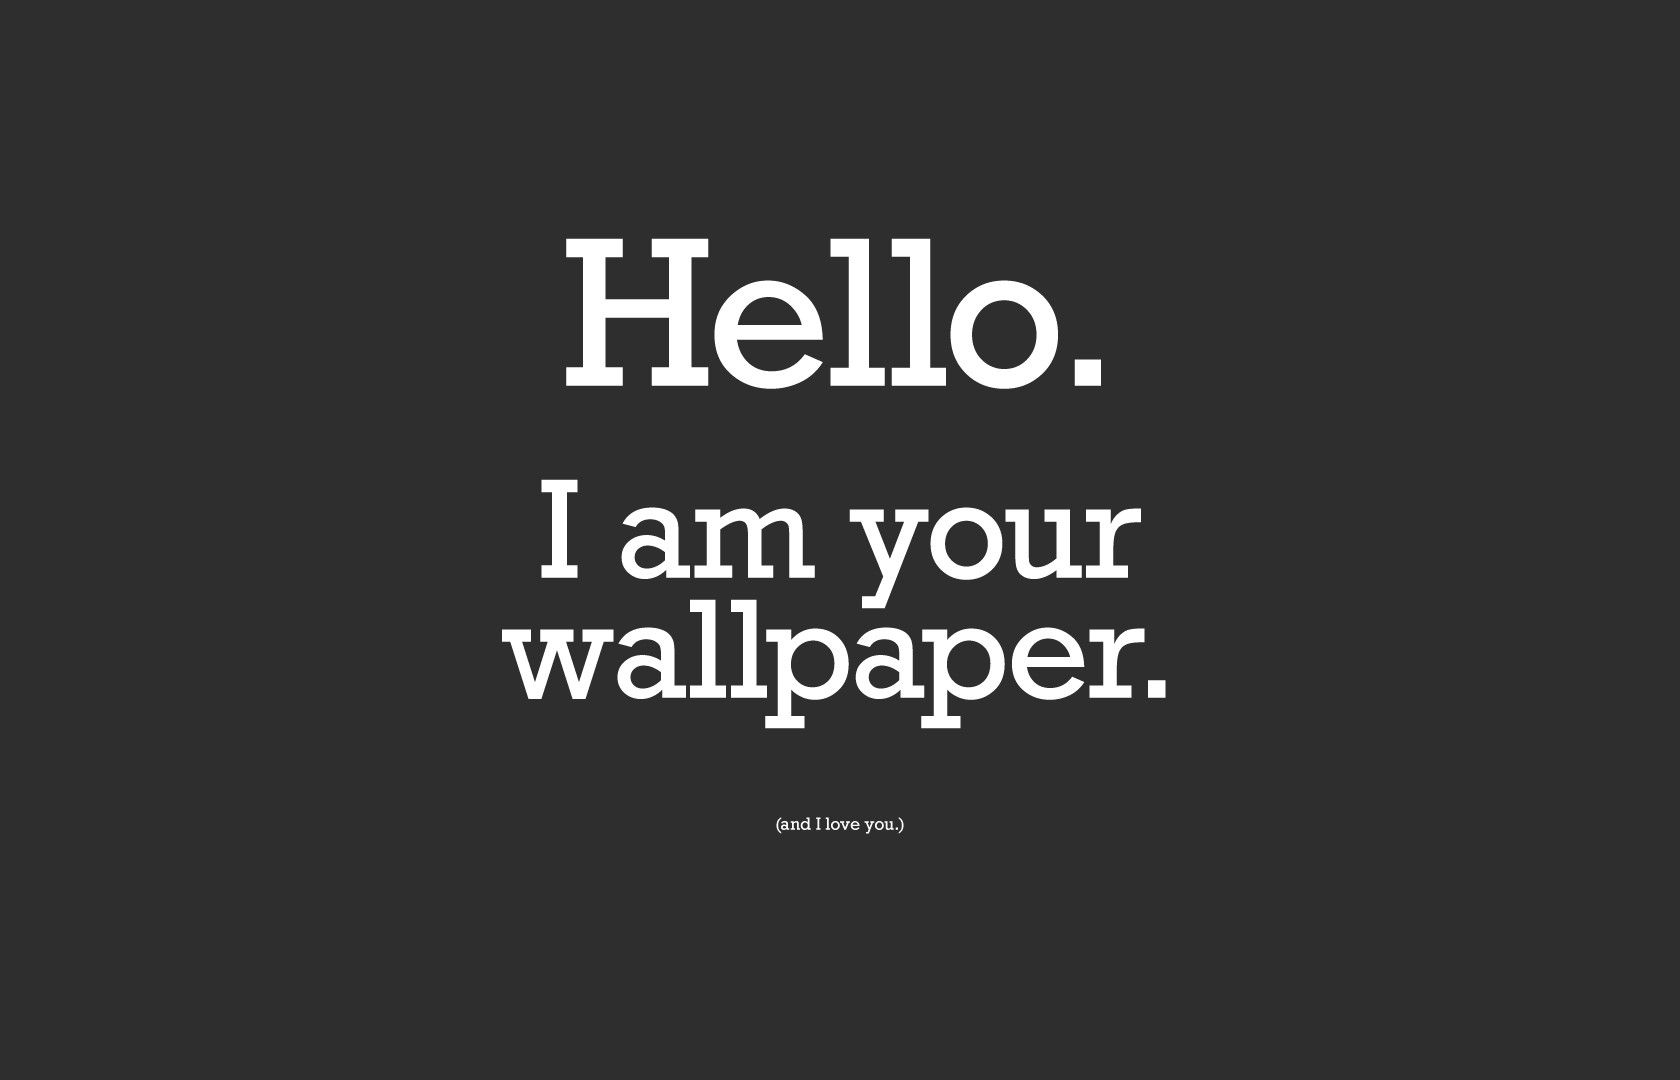 Free Download Funny Crazy Pictures Memes Cartoon Gallery Rocks Funny Quotes Wallpaper Funny Phone Wallpaper Cute Wallpapers Quotes